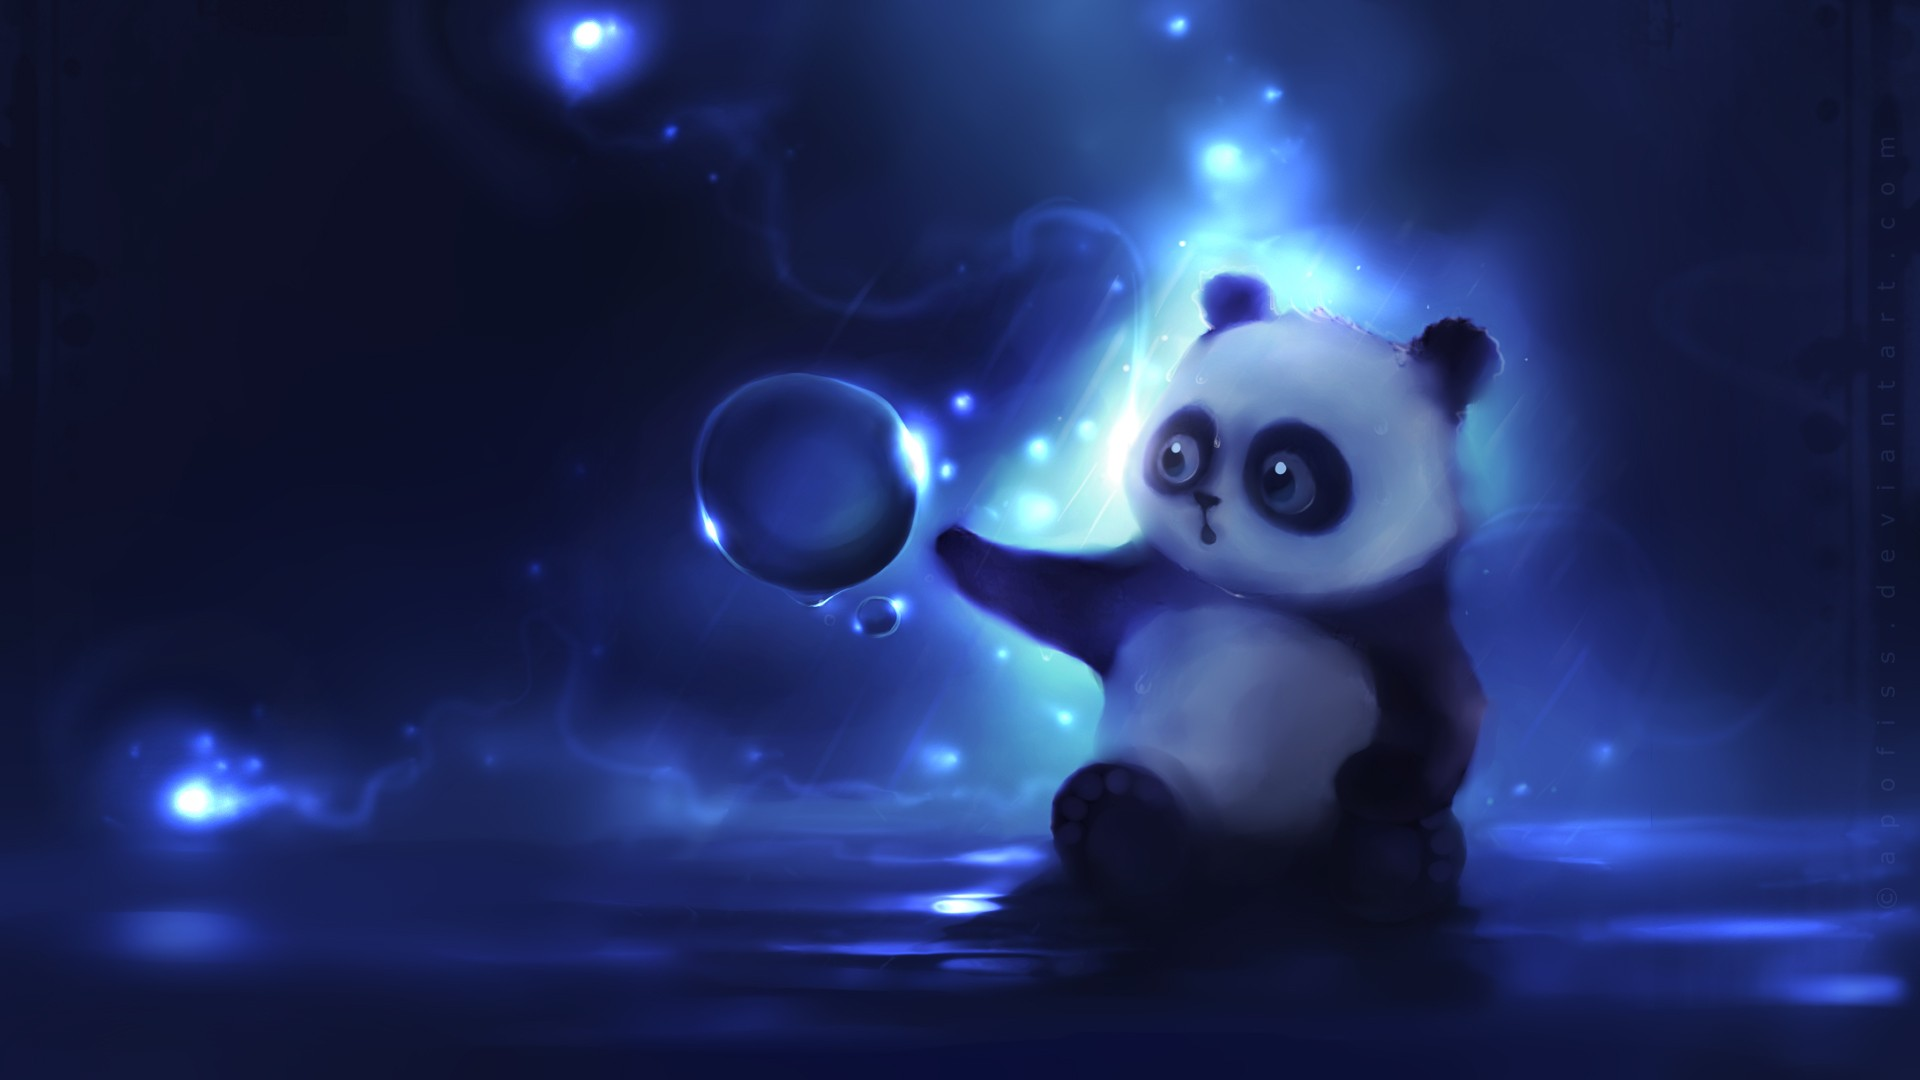 Cartoon Panda Wallpapers 421.09 Kb